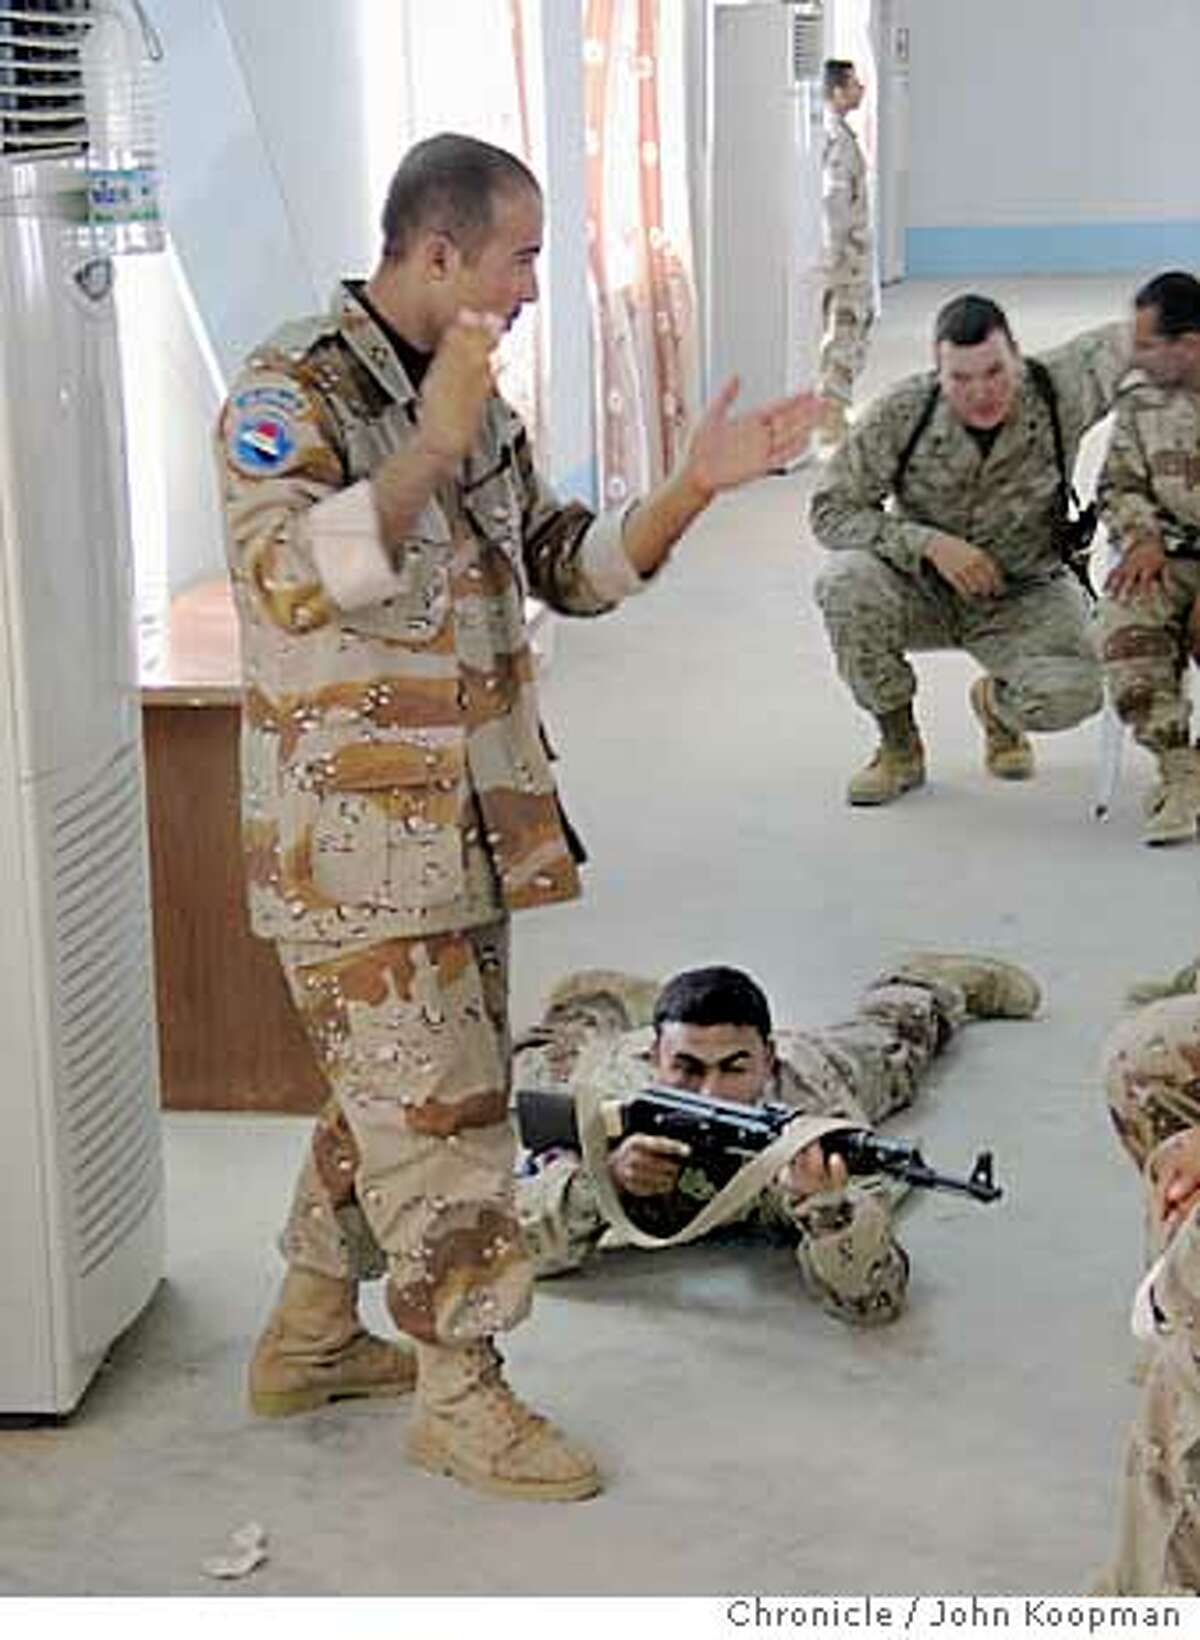 Marine Sgt. Bill Knipper conducts training in squad tactics with Iraqi commando recruits. Chronicle photo by John Koopman